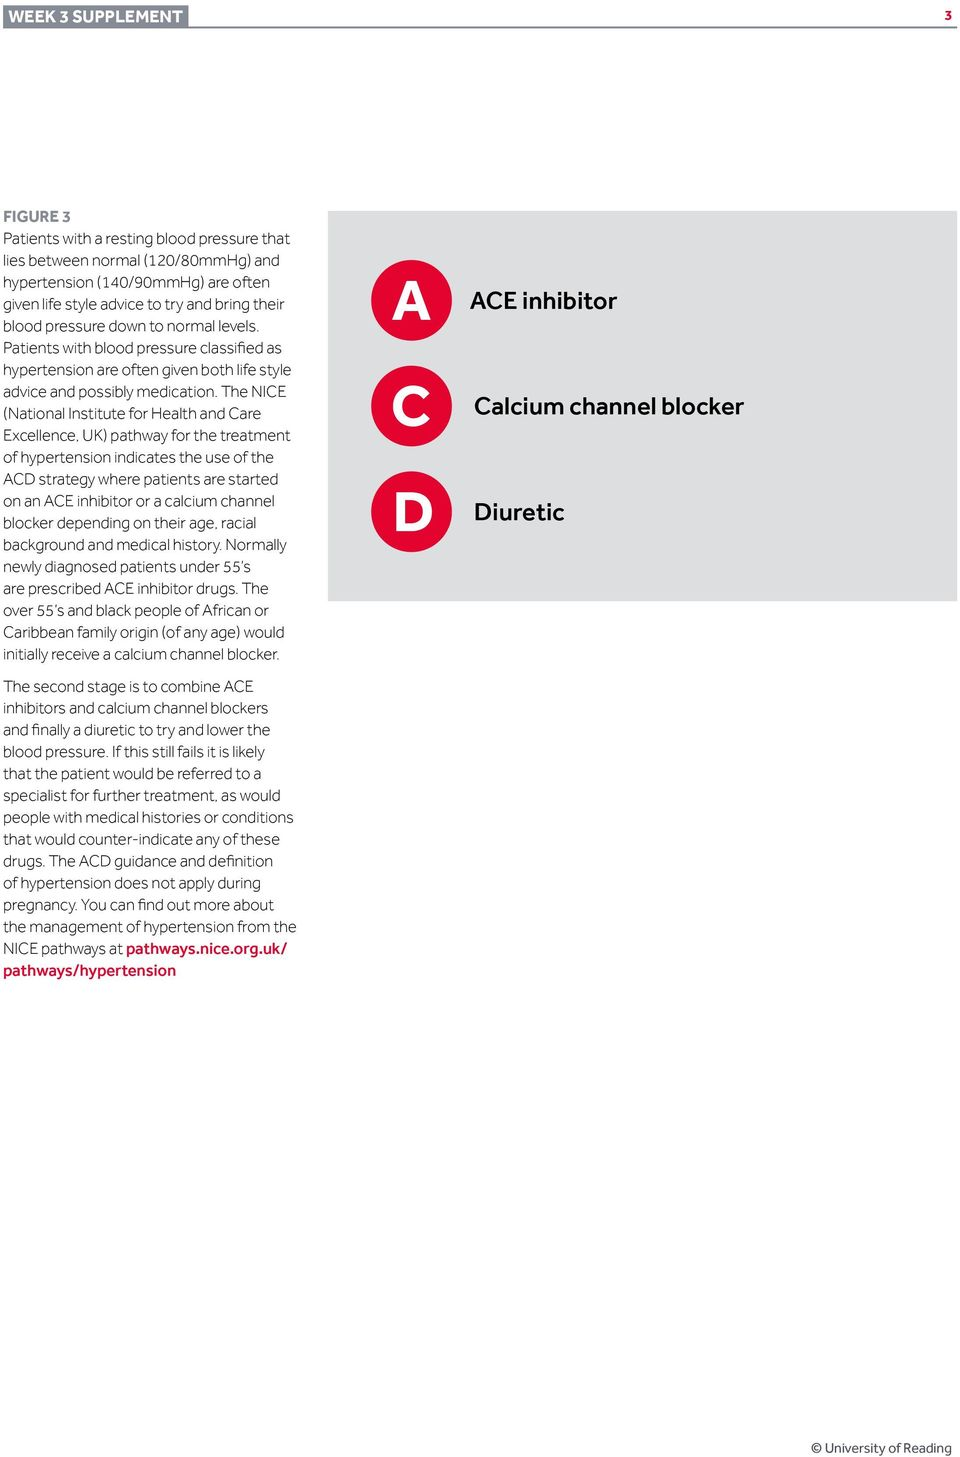 The NICE (National Institute for Health and Care Excellence, UK) pathway for the treatment of hypertension indicates the use of the ACD strategy where patients are started on an ACE inhibitor or a